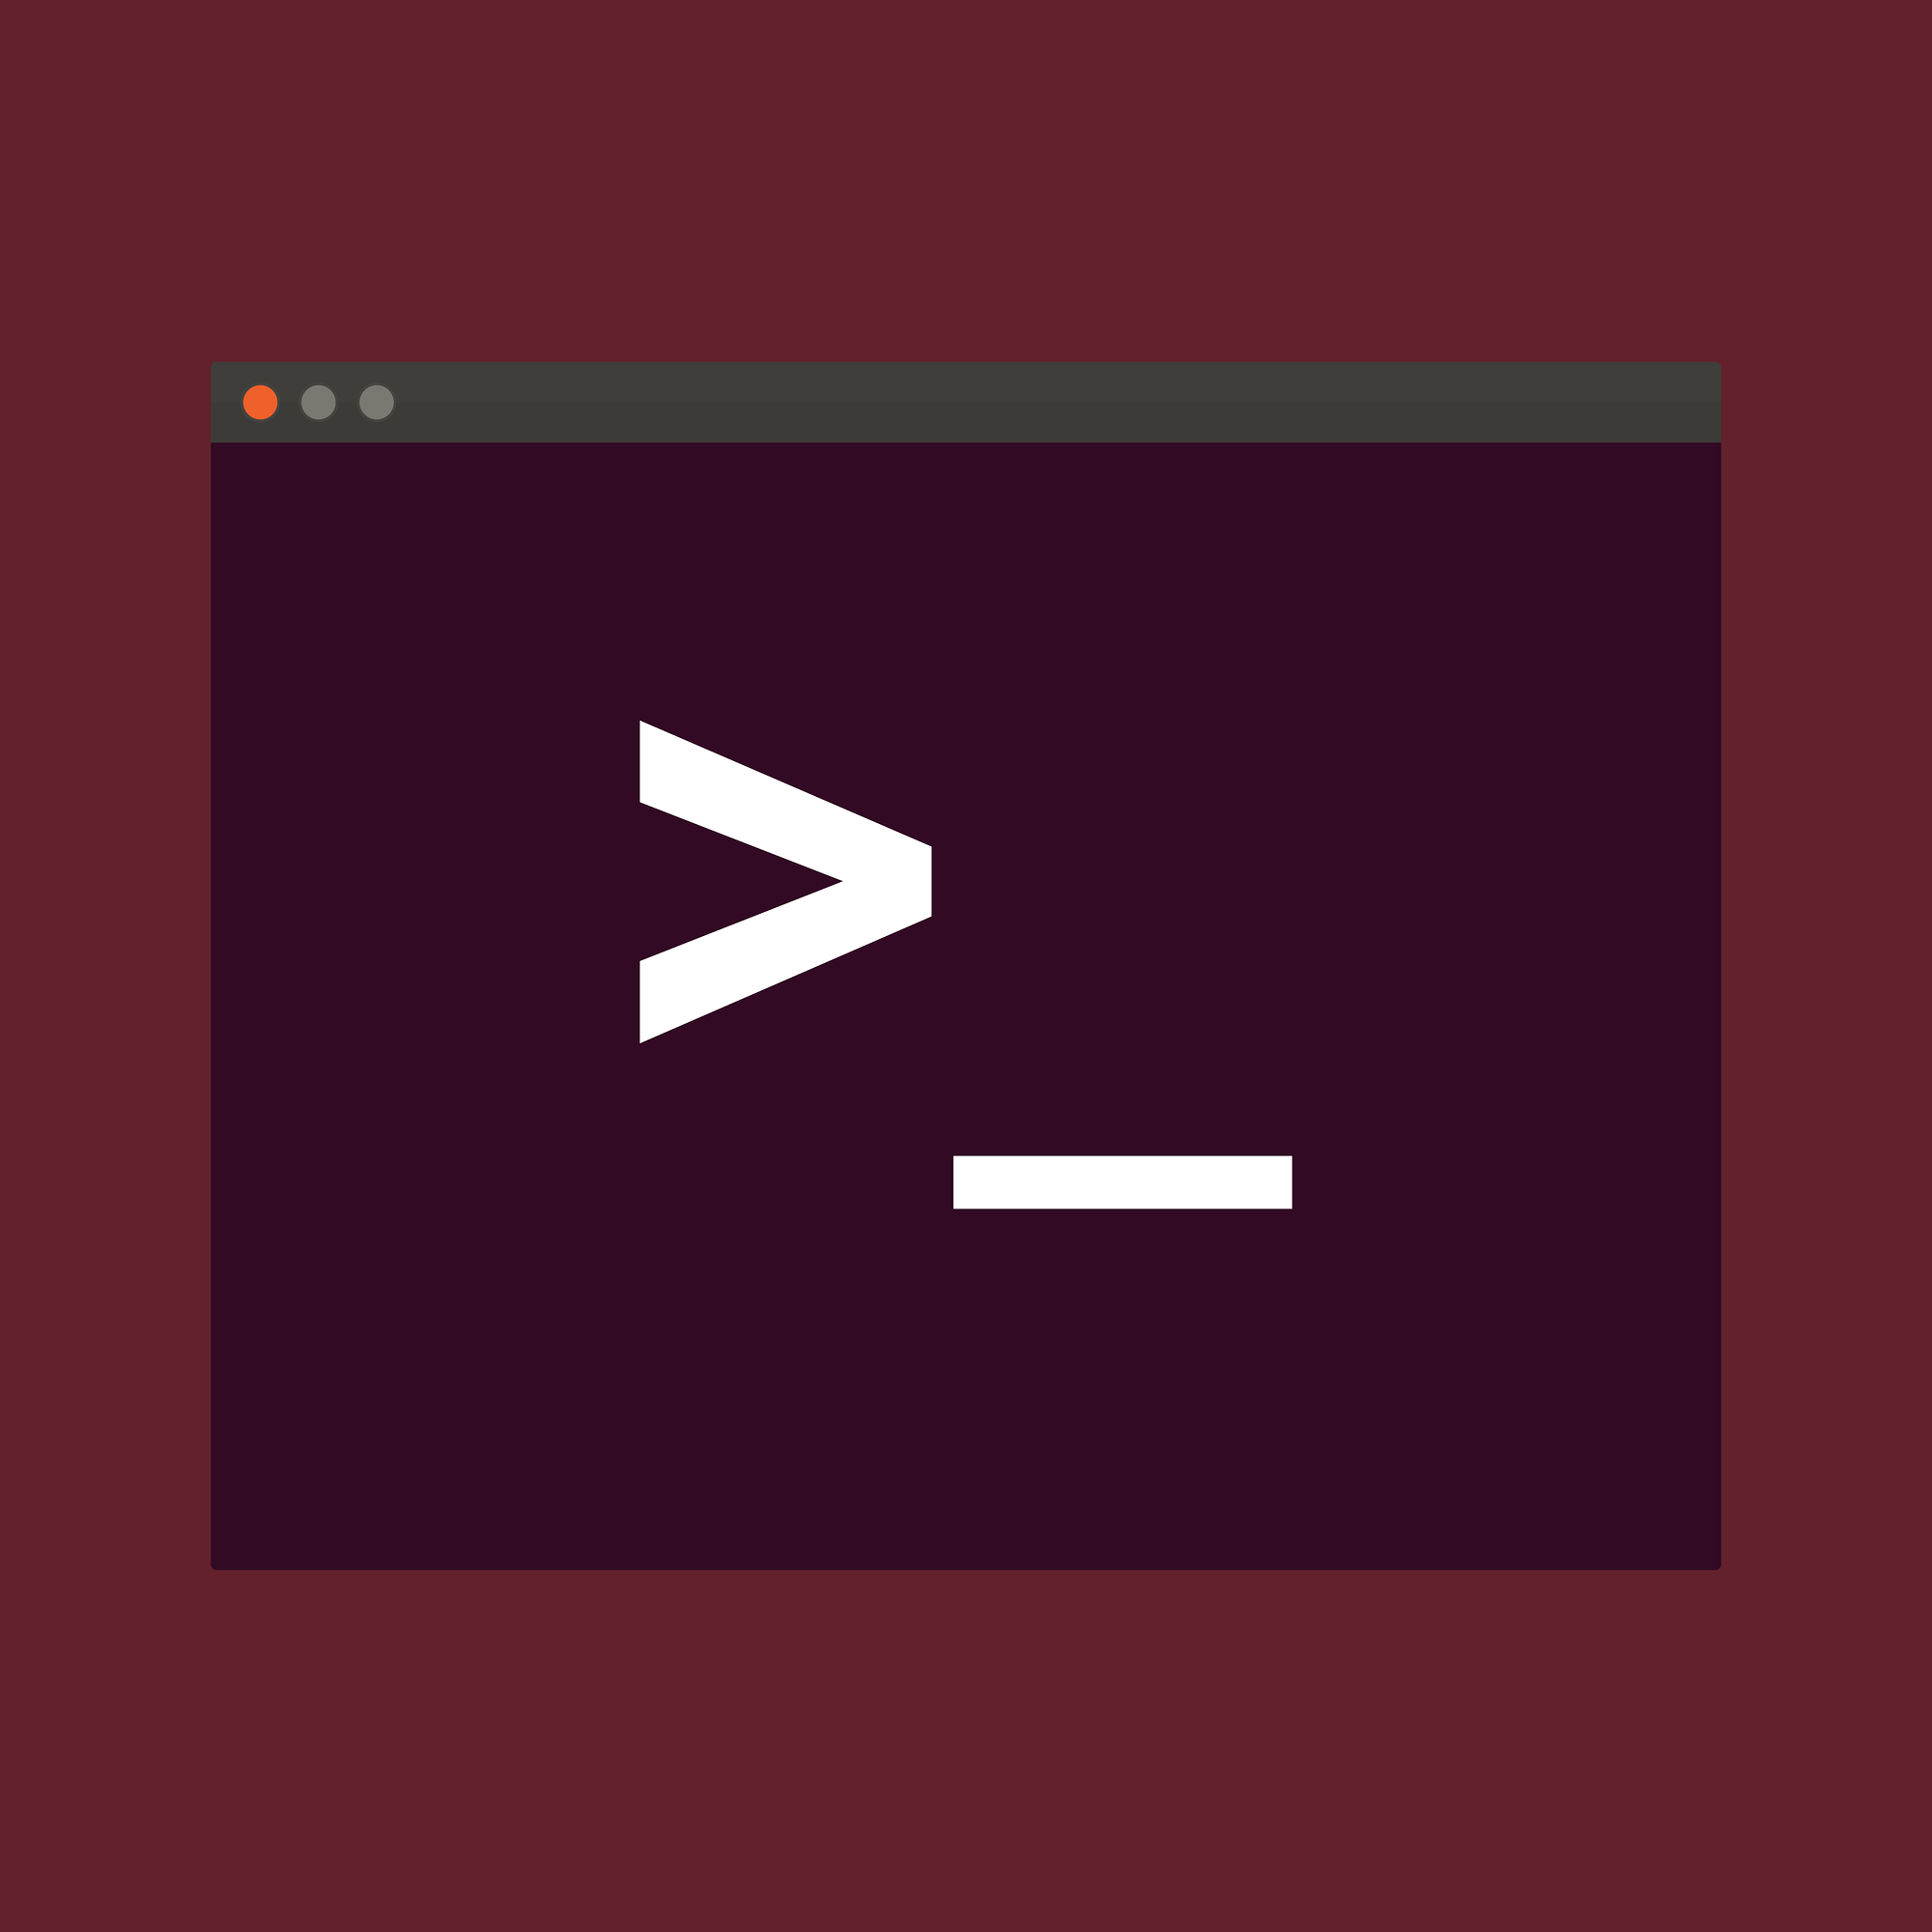 Terminal startup icon, direct access to system via command line